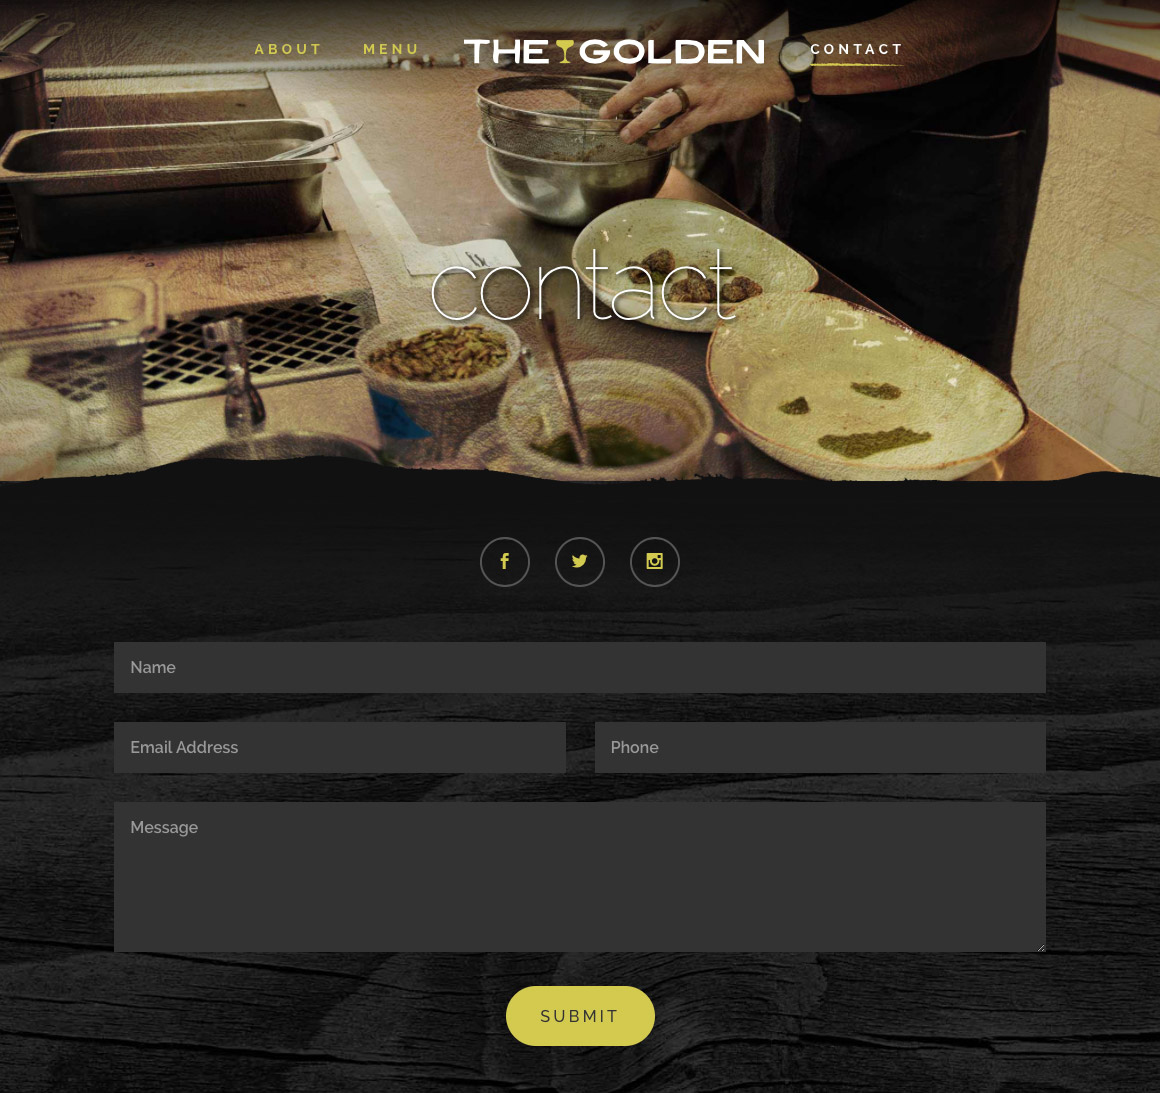 The Golden: Contact page